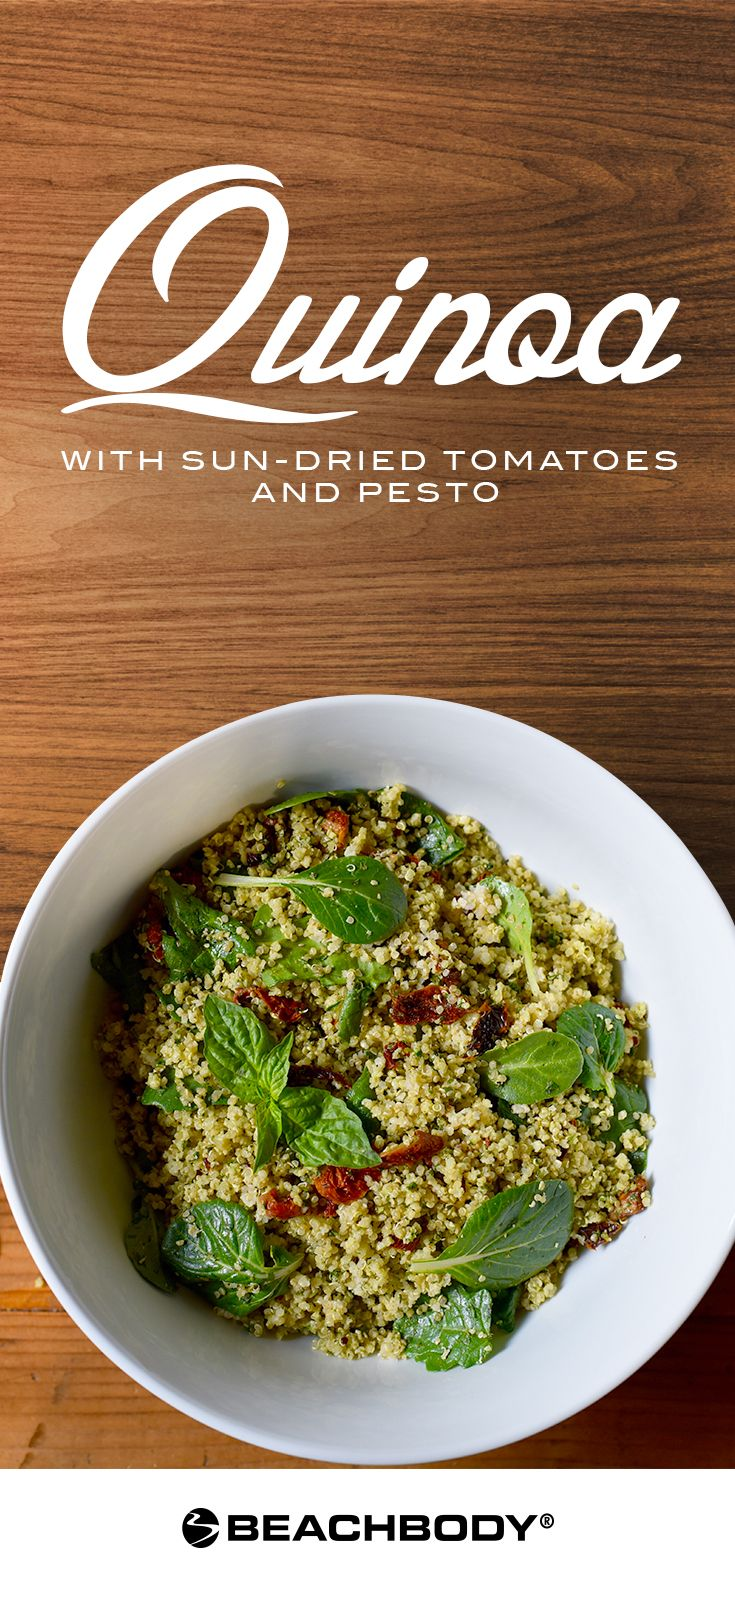 This Quinoa with Sun-Dried Tomatoes and Pesto recipe is basically a bowl of superfood that tastes incredible. It's perfect for a potluck, an office lunch, or a hearty side dish! // healthy recipes // salads // quinoa recipes // vegetarian // lunches // dinners // Beachbody // BeachbodyBlog.com